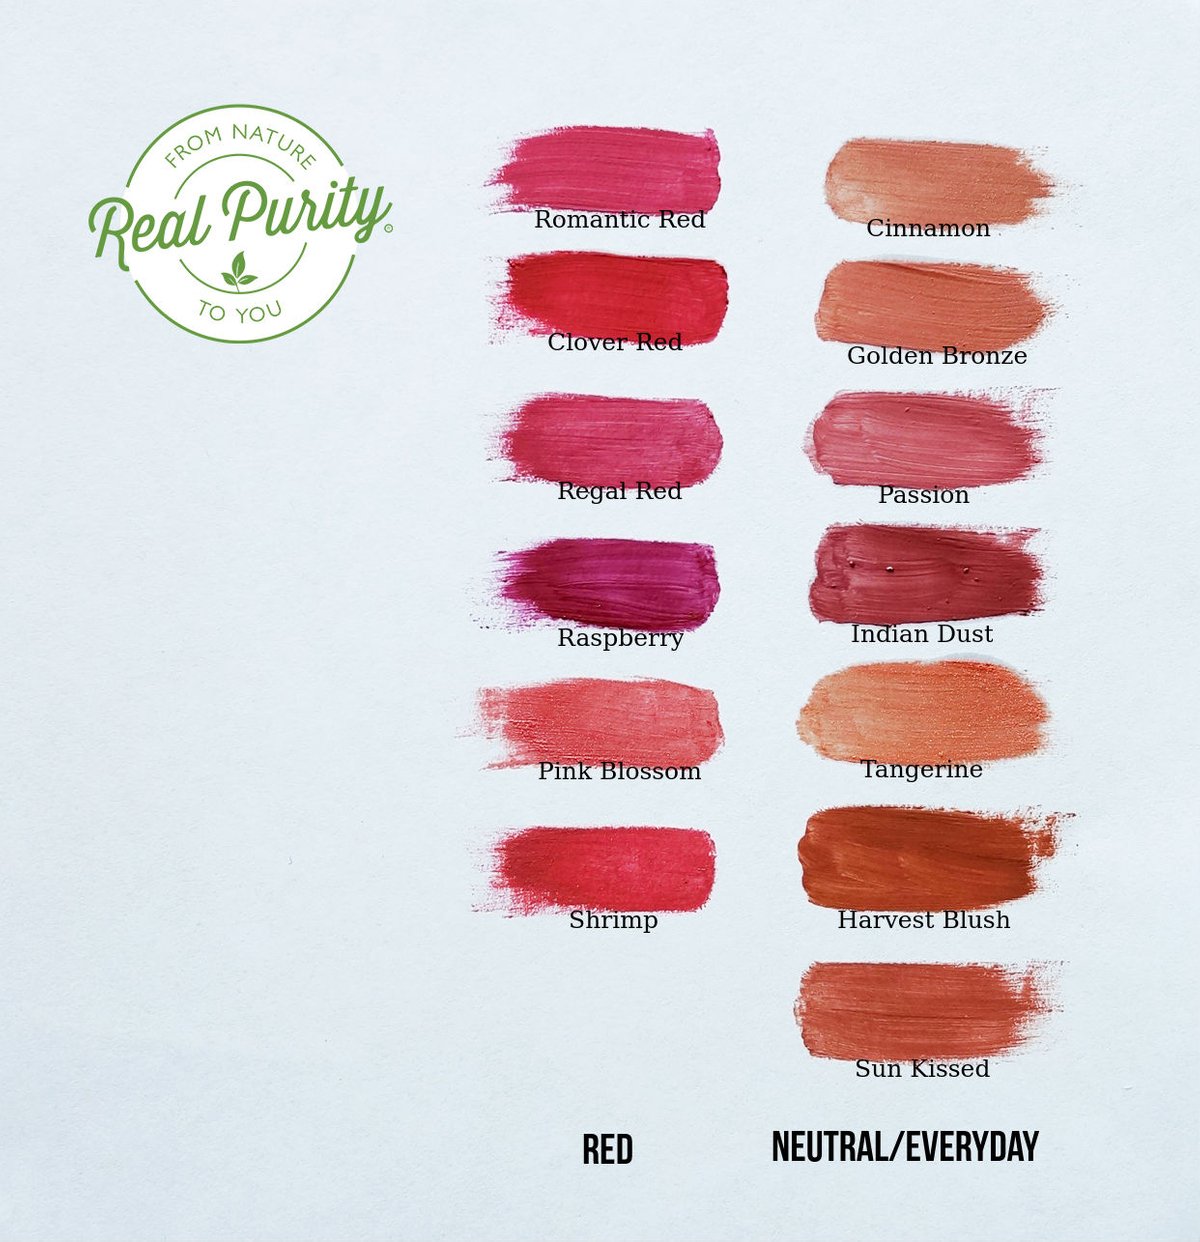 Real Purity Lipstick Swatches